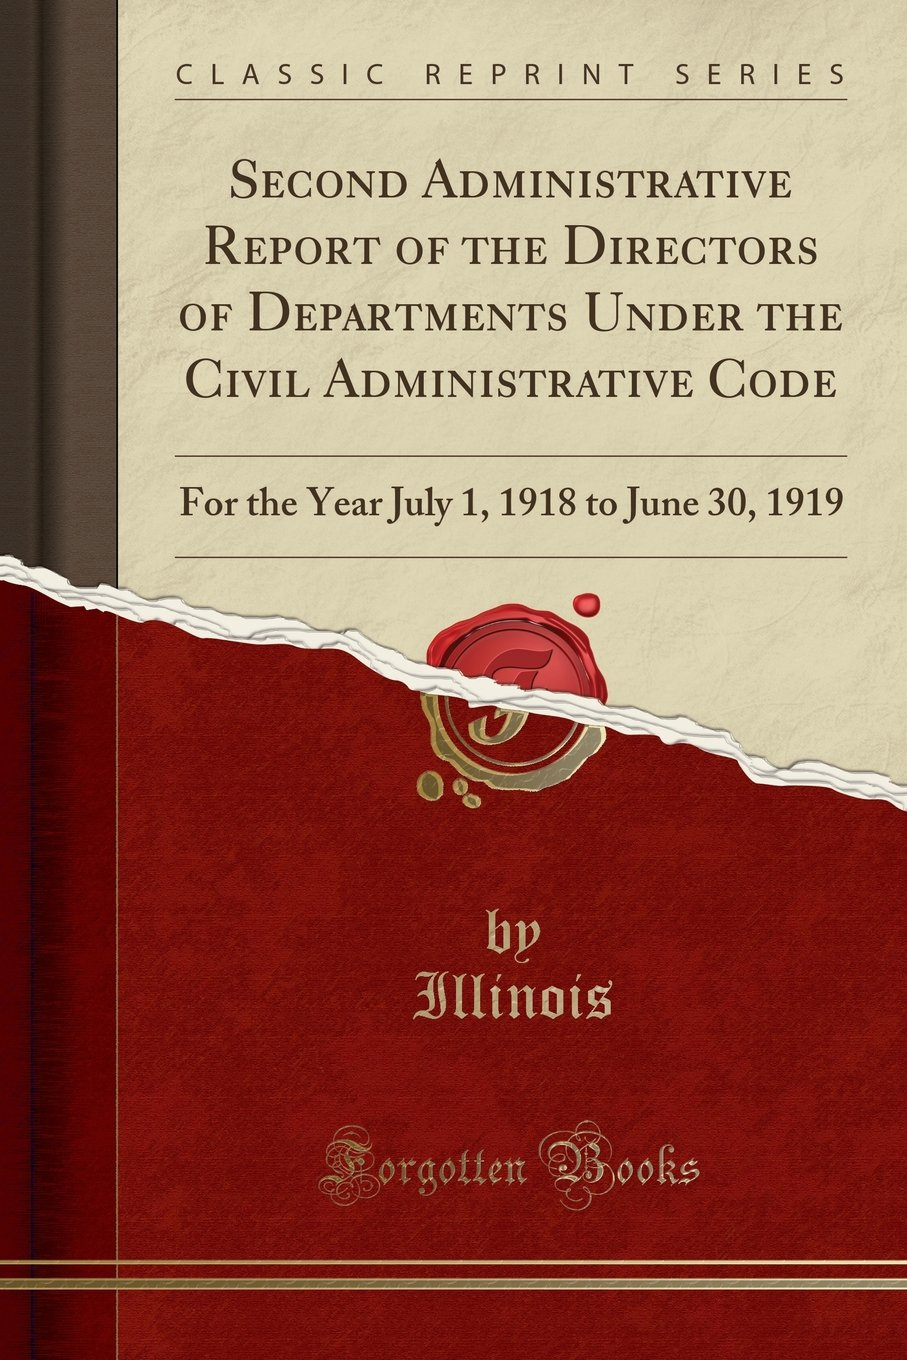 Download Second Administrative Report of the Directors of Departments Under the Civil Administrative Code: For the Year July 1, 1918 to June 30, 1919 (Classic Reprint) ebook